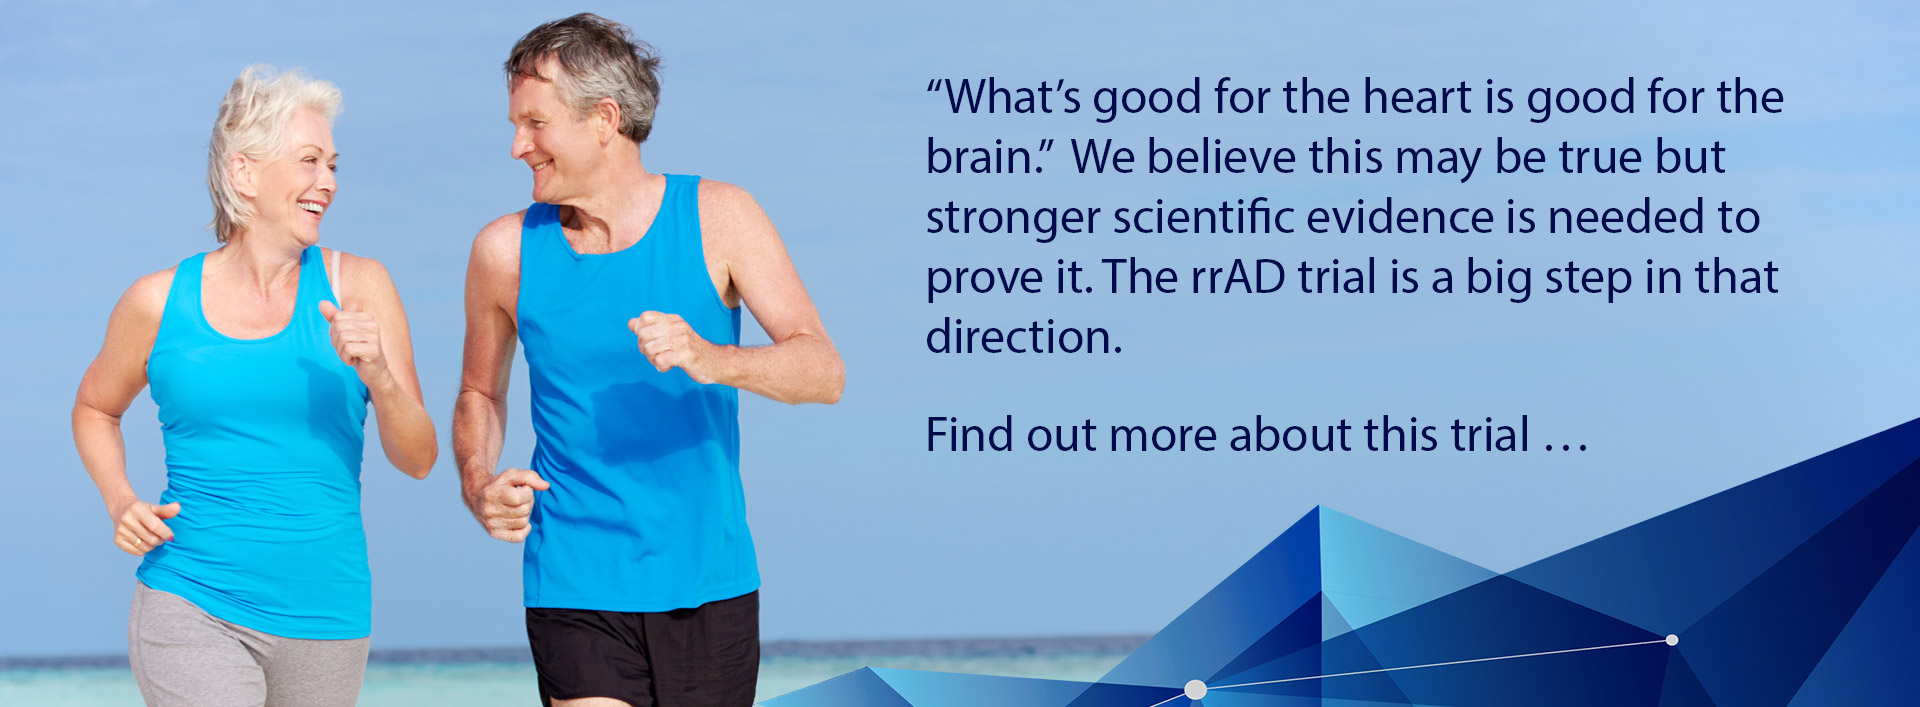 """""""What's good for the heart is good for the brain.""""  We believe this may be true but stronger scientific evidence is needed to prove it. The rrAD trial is a big step in that direction.  Find out more about this trial"""